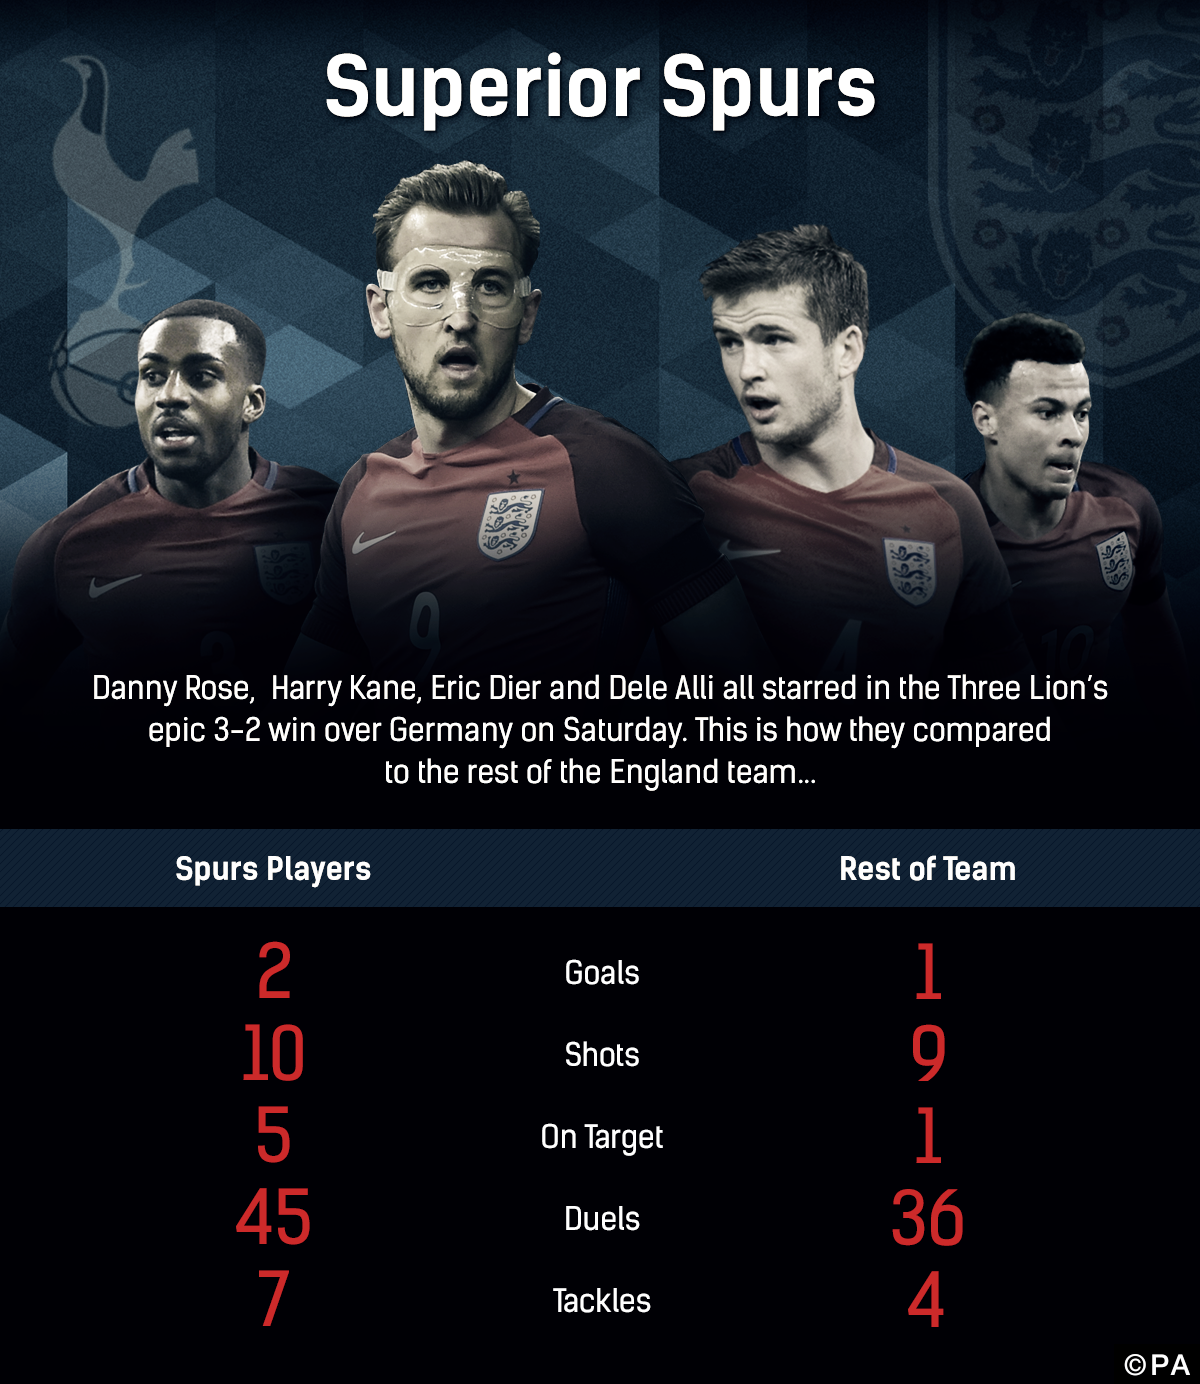 SuperiorSpurs